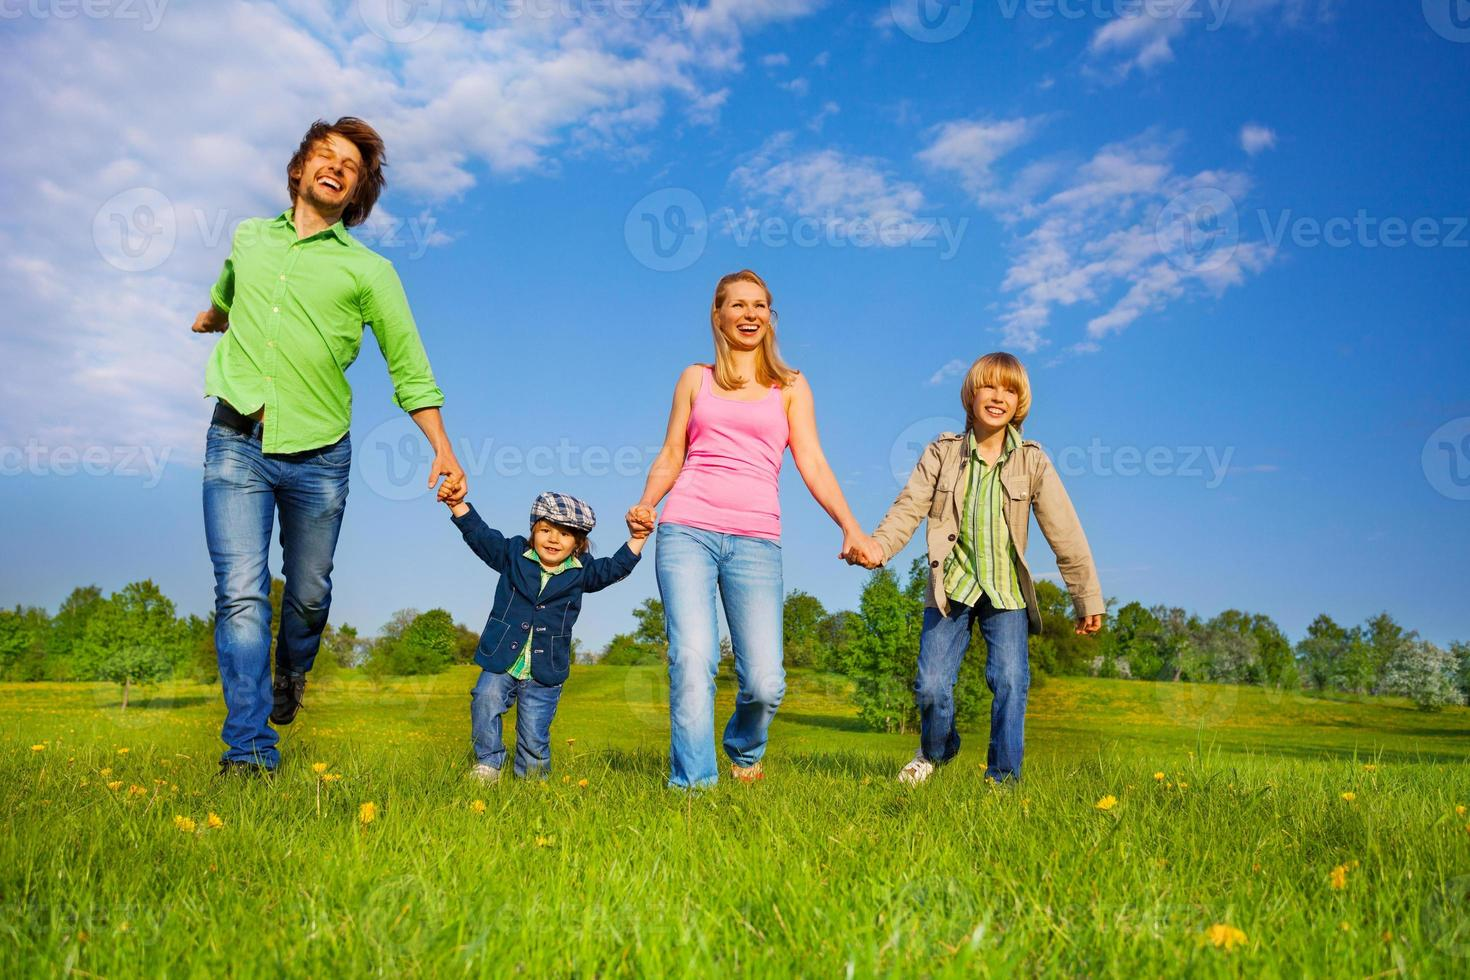 Cheerful parents walking with boys in park photo